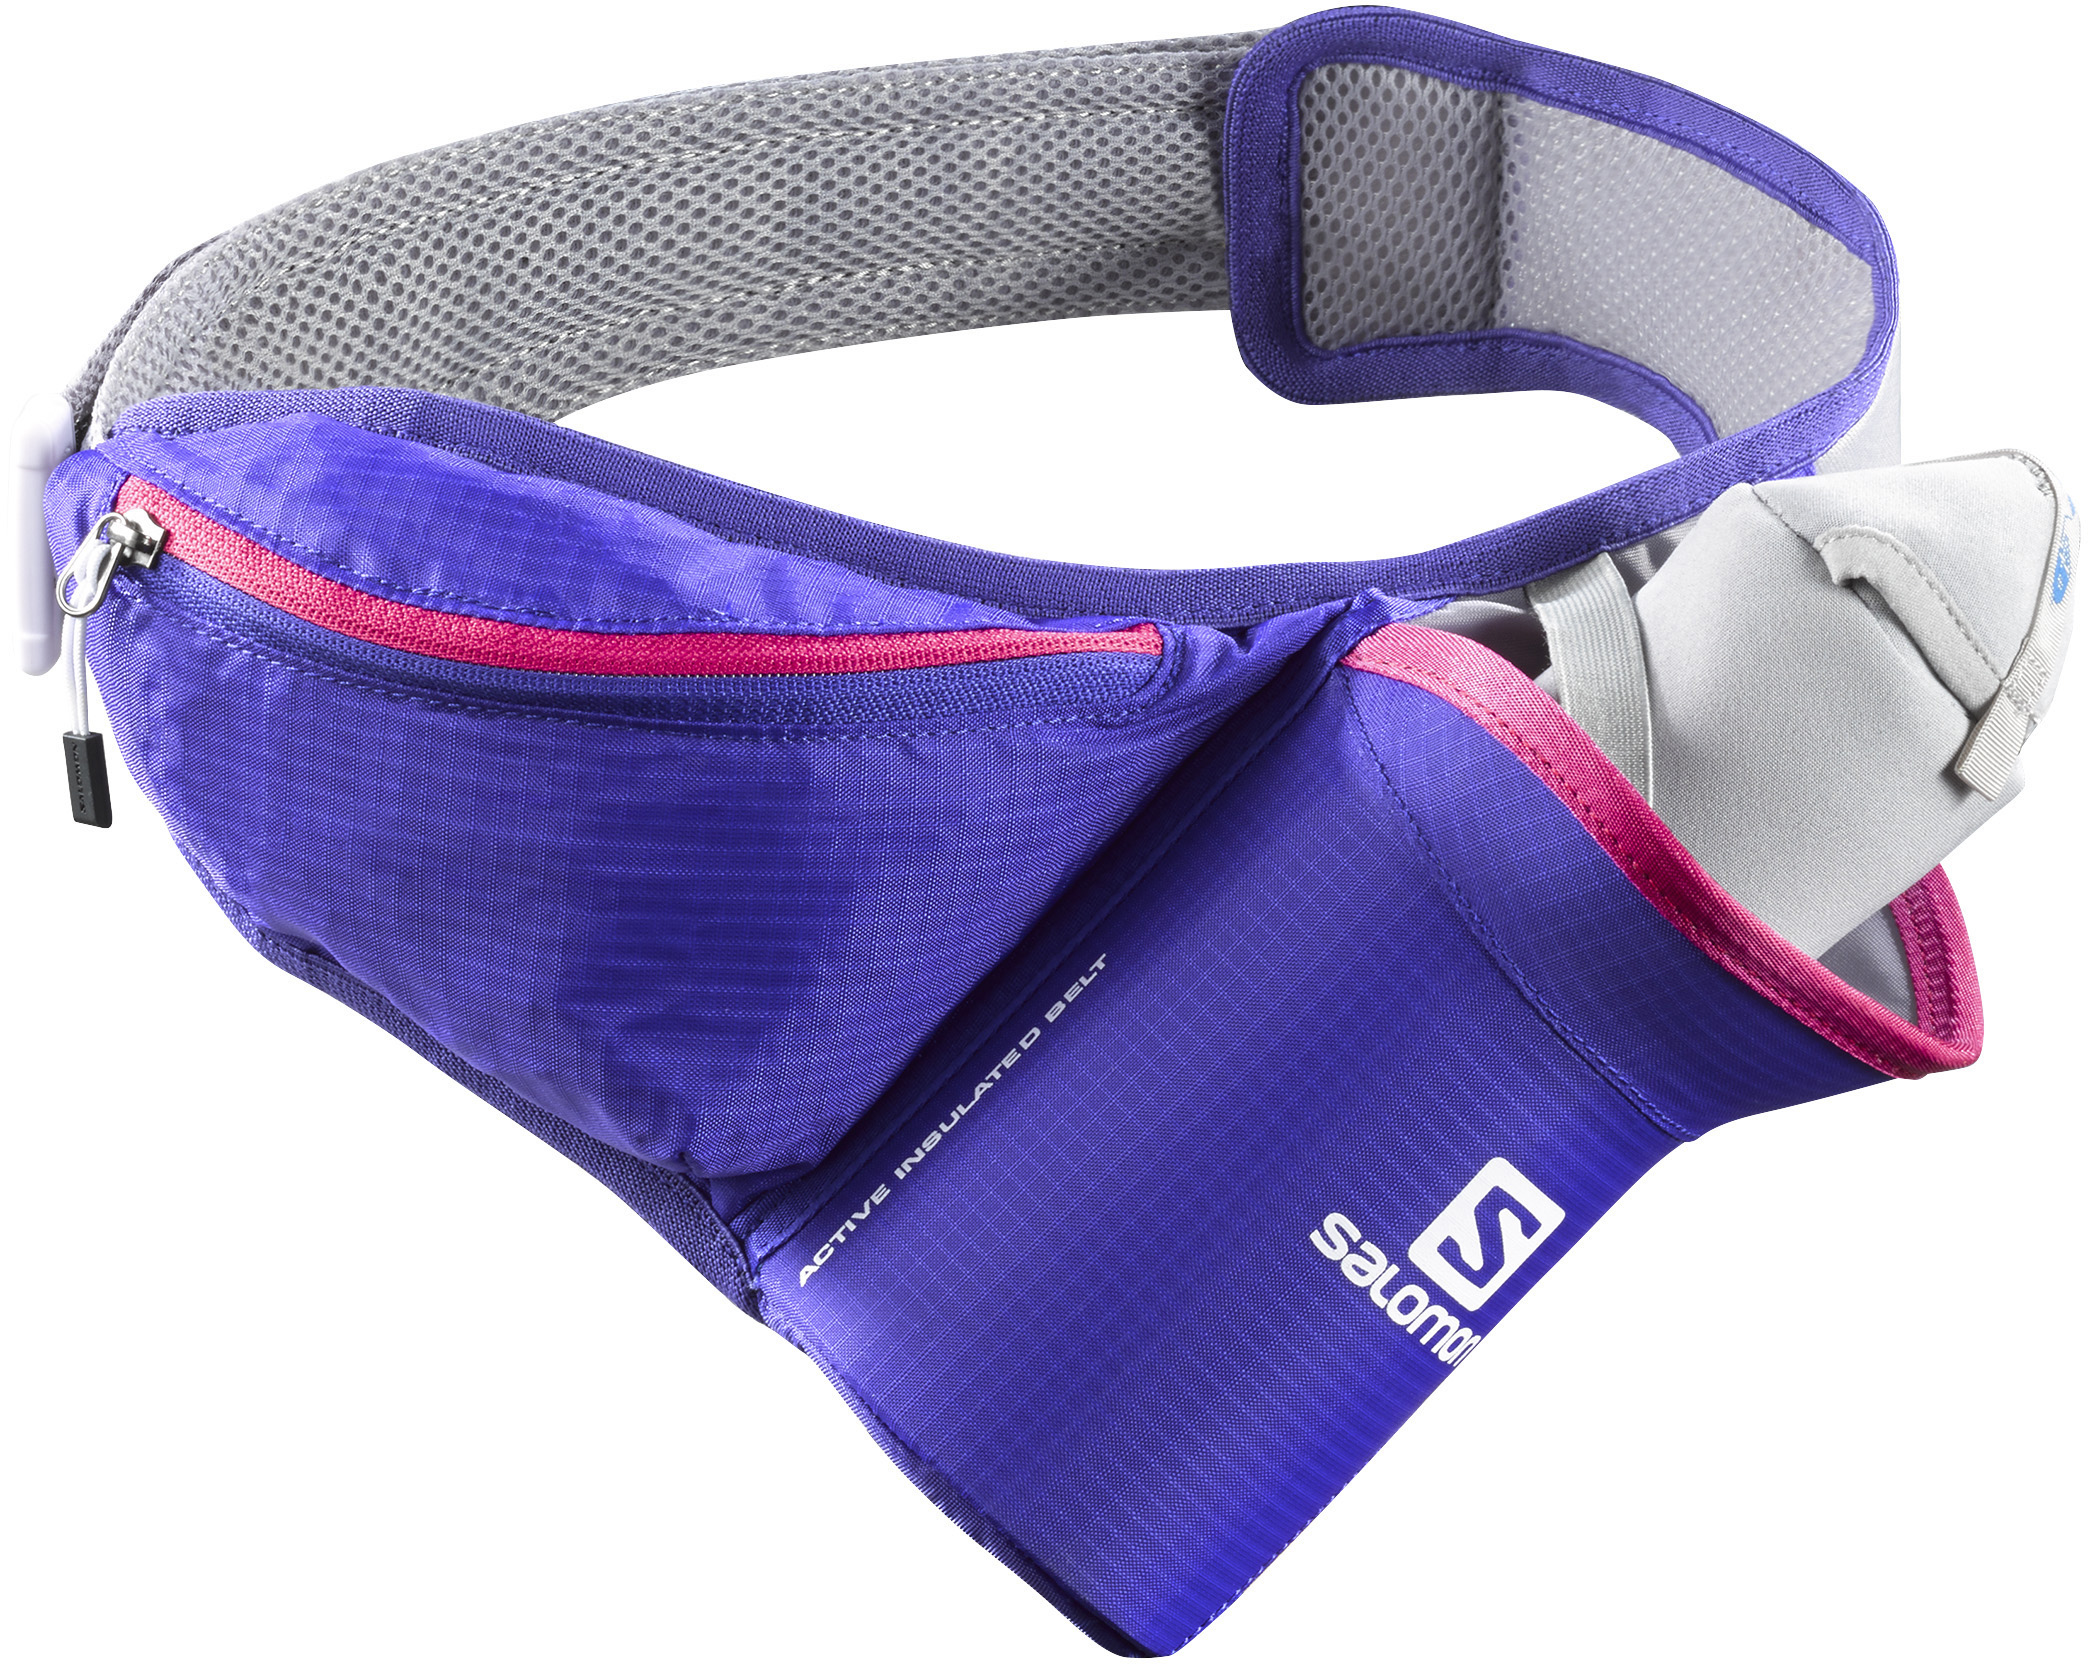 SALOMON ACTIVE INSULATED BELT - Phlox Violet/On L38257600